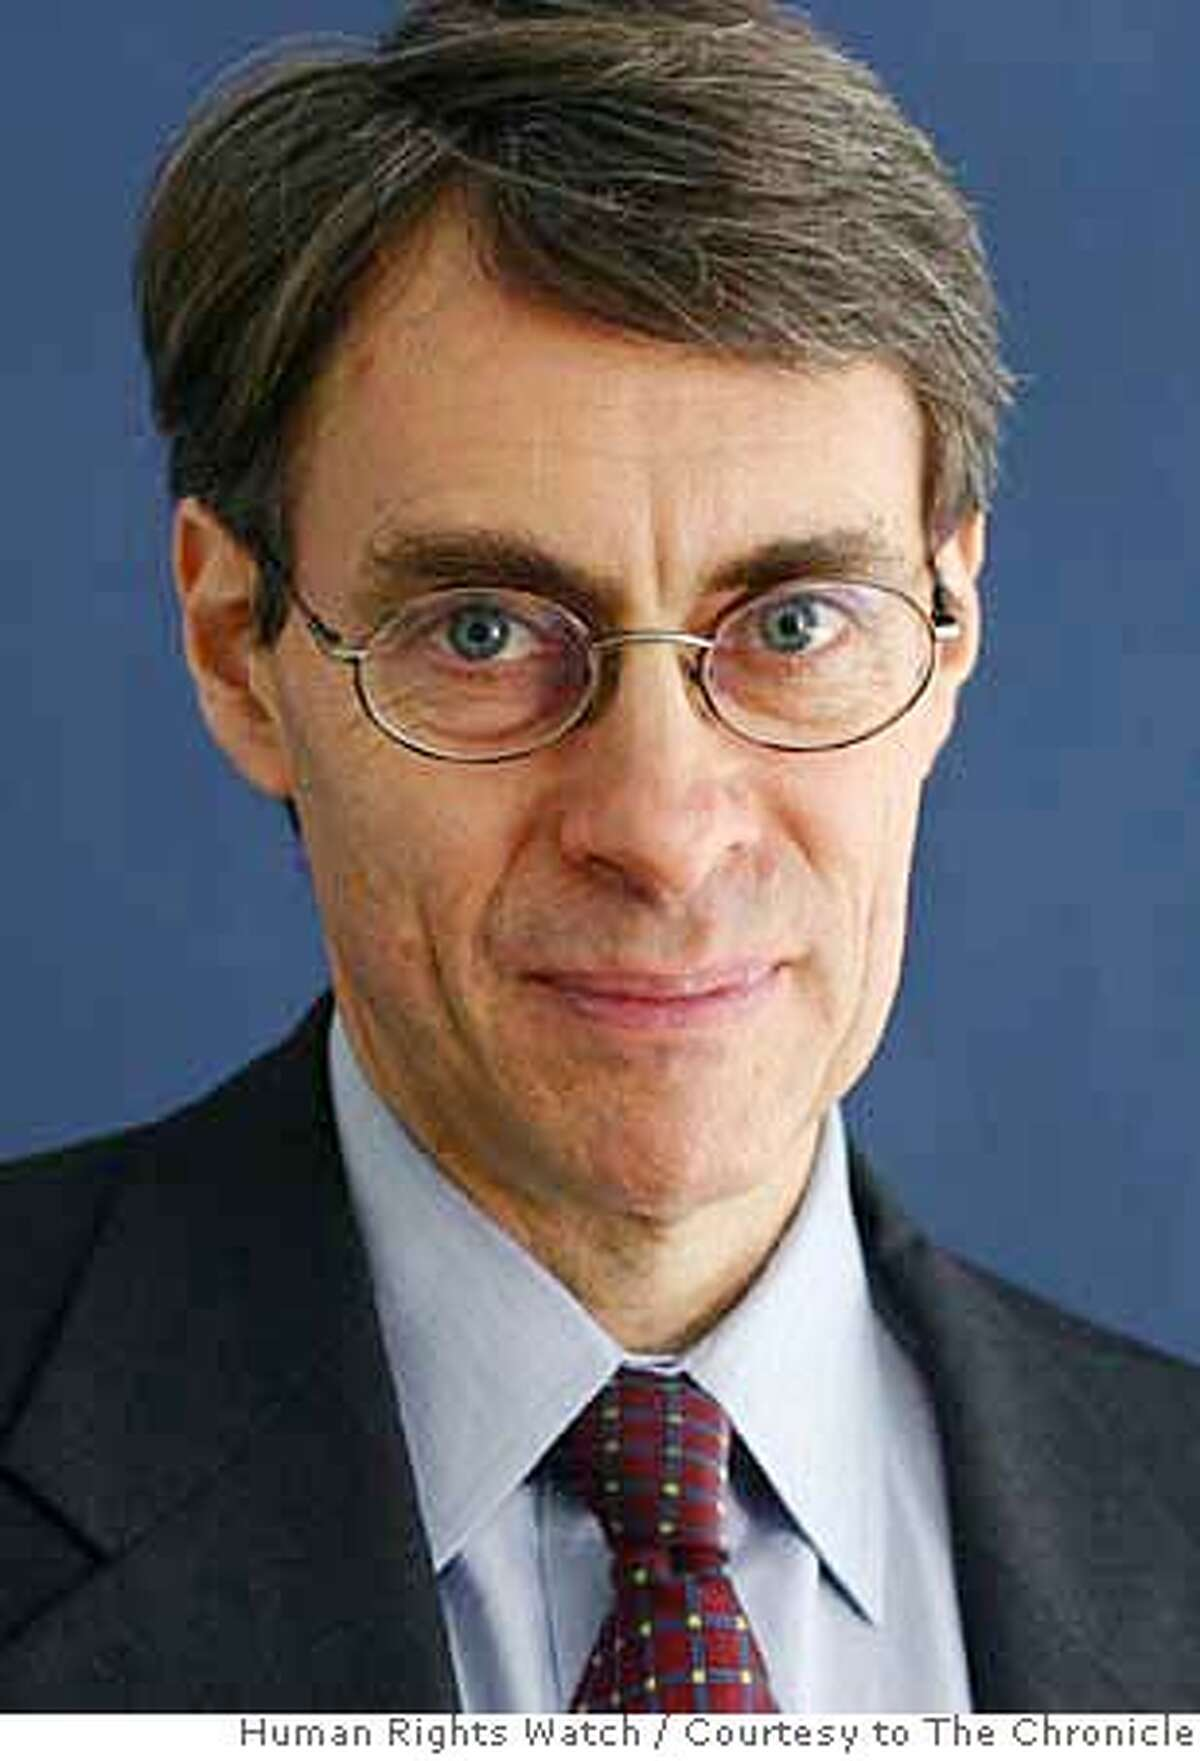 Executive director of Human Rights Watch, Kenneth Roth in this undated picture. Human Rights Watch / Courtesy to The Chronicle MANDATORY CREDIT FOR PHOTOG AND SAN FRANCISCO CHRONICLE/NO SALES-MAGS OUT